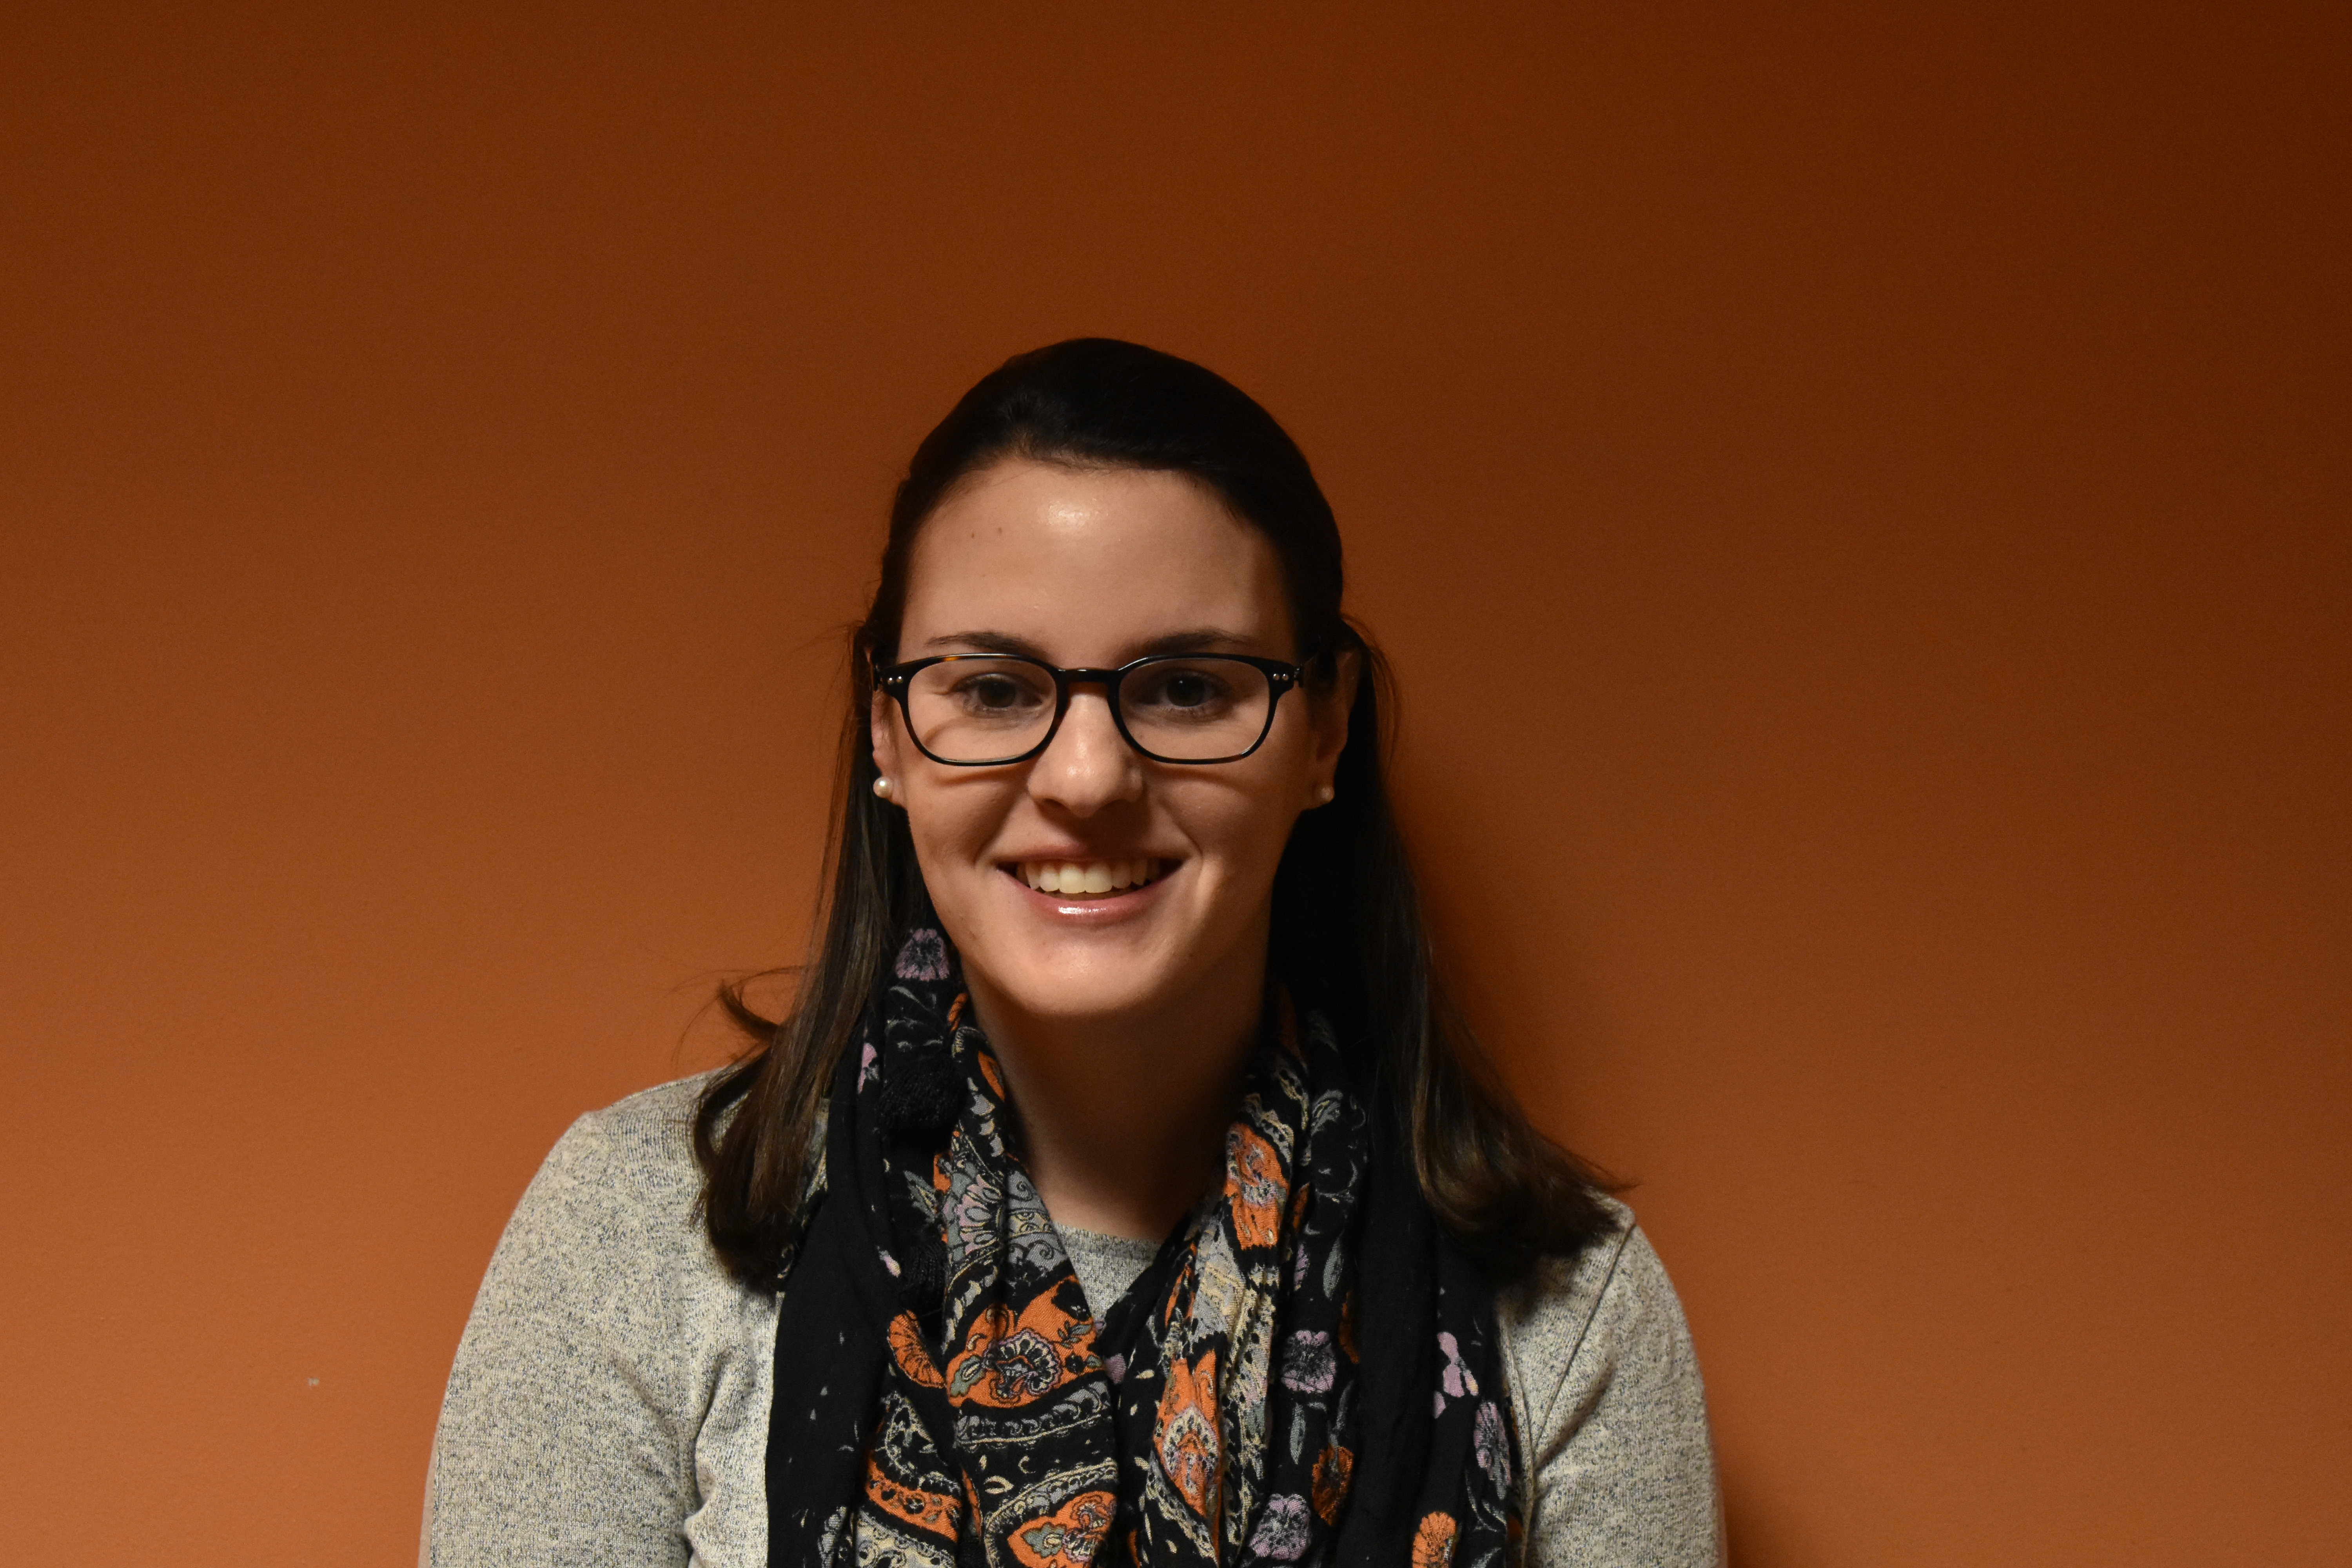 CFCS Perspectives: Lauren Sohn, Family Services Intern